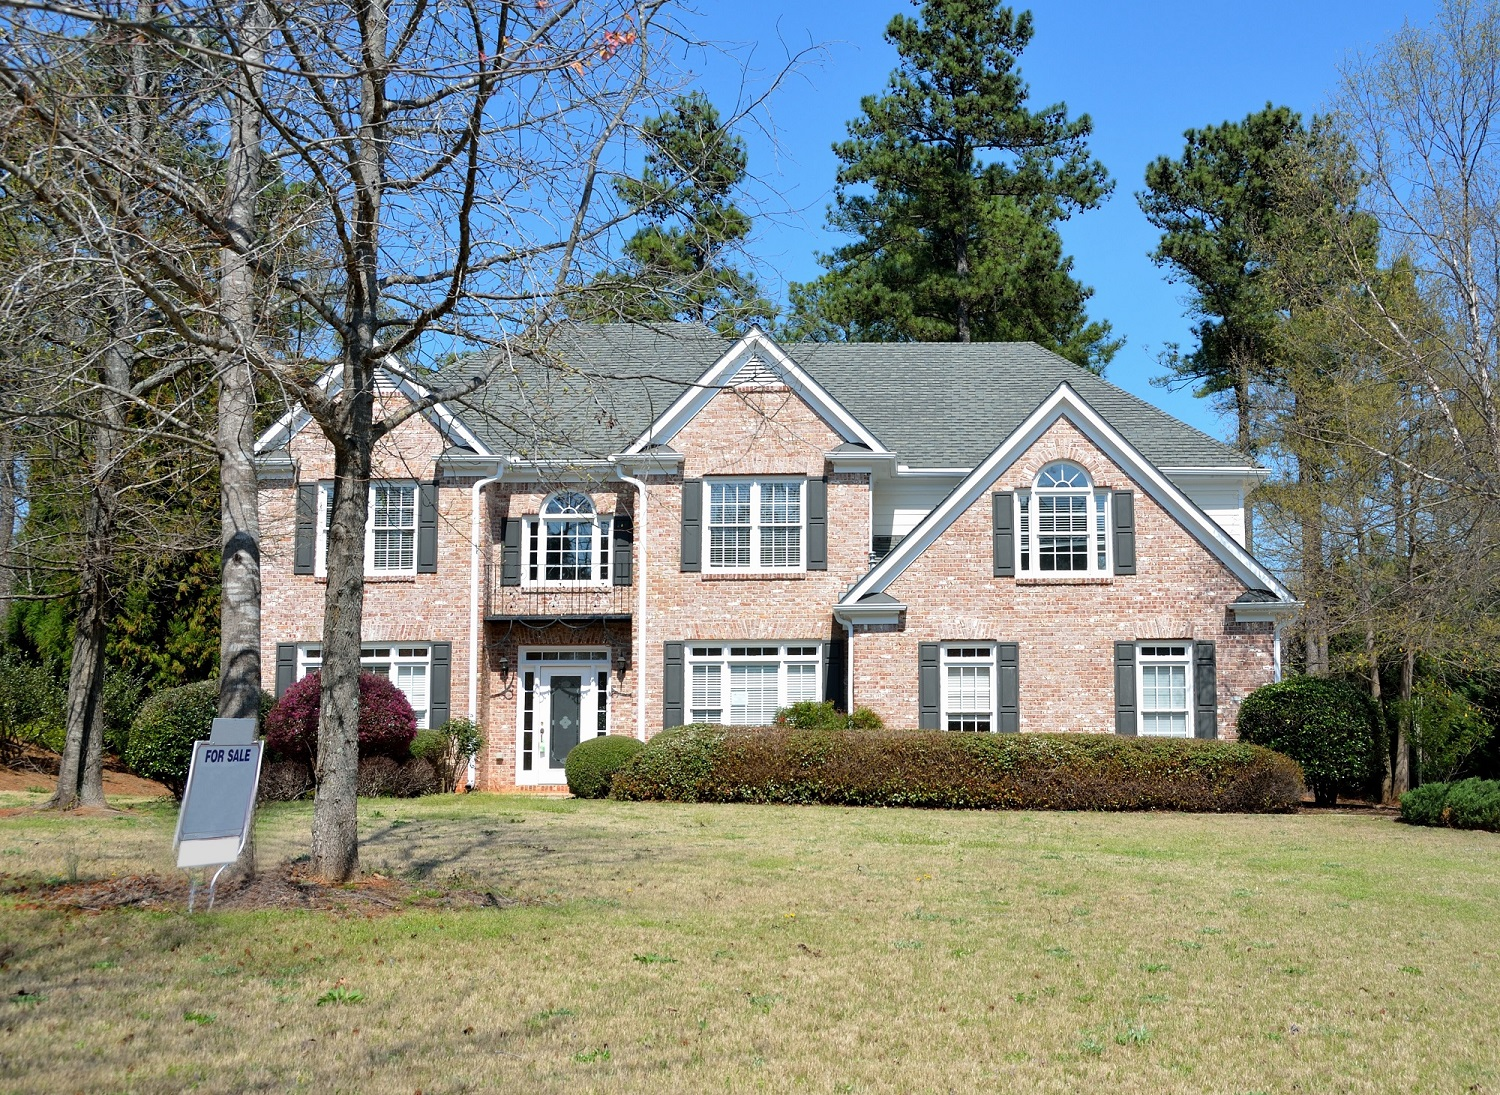 South Carolina real estate for sale